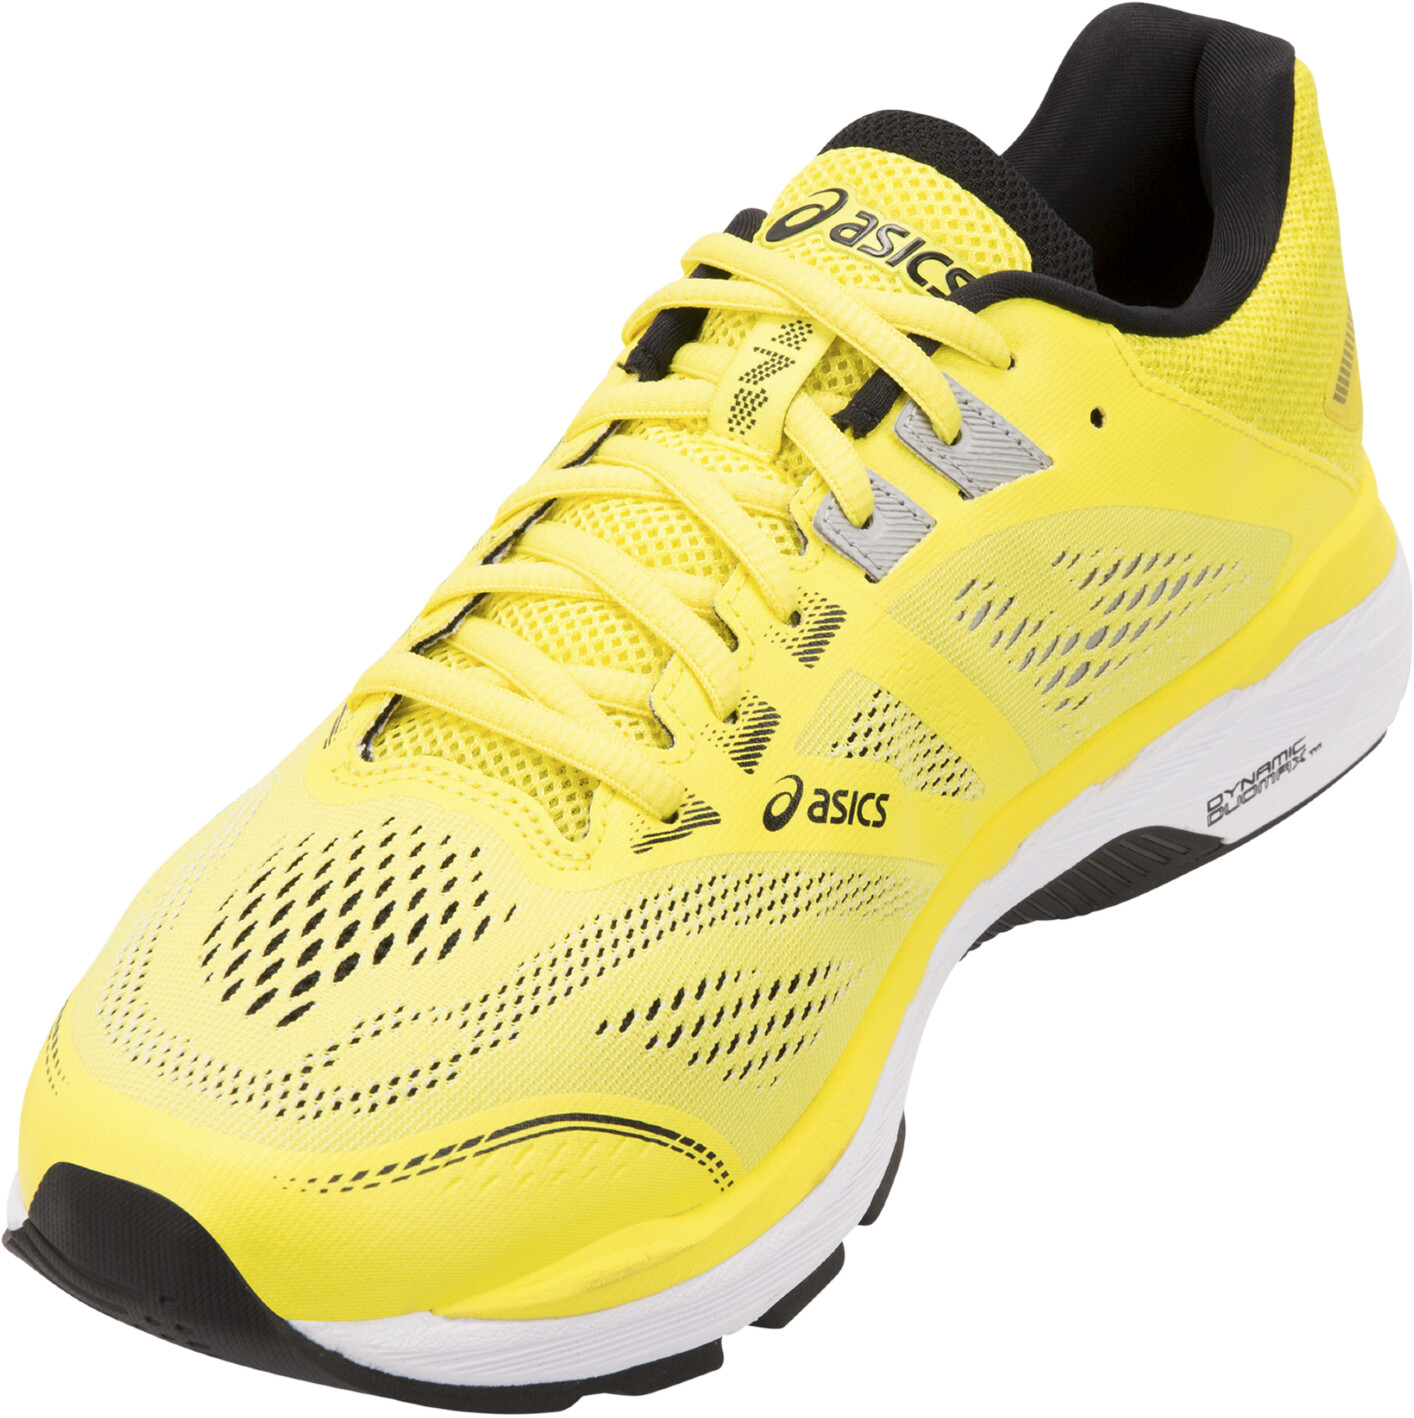 asics GT-2000 7 Sko Herrer, lemon spark/black | Running shoes